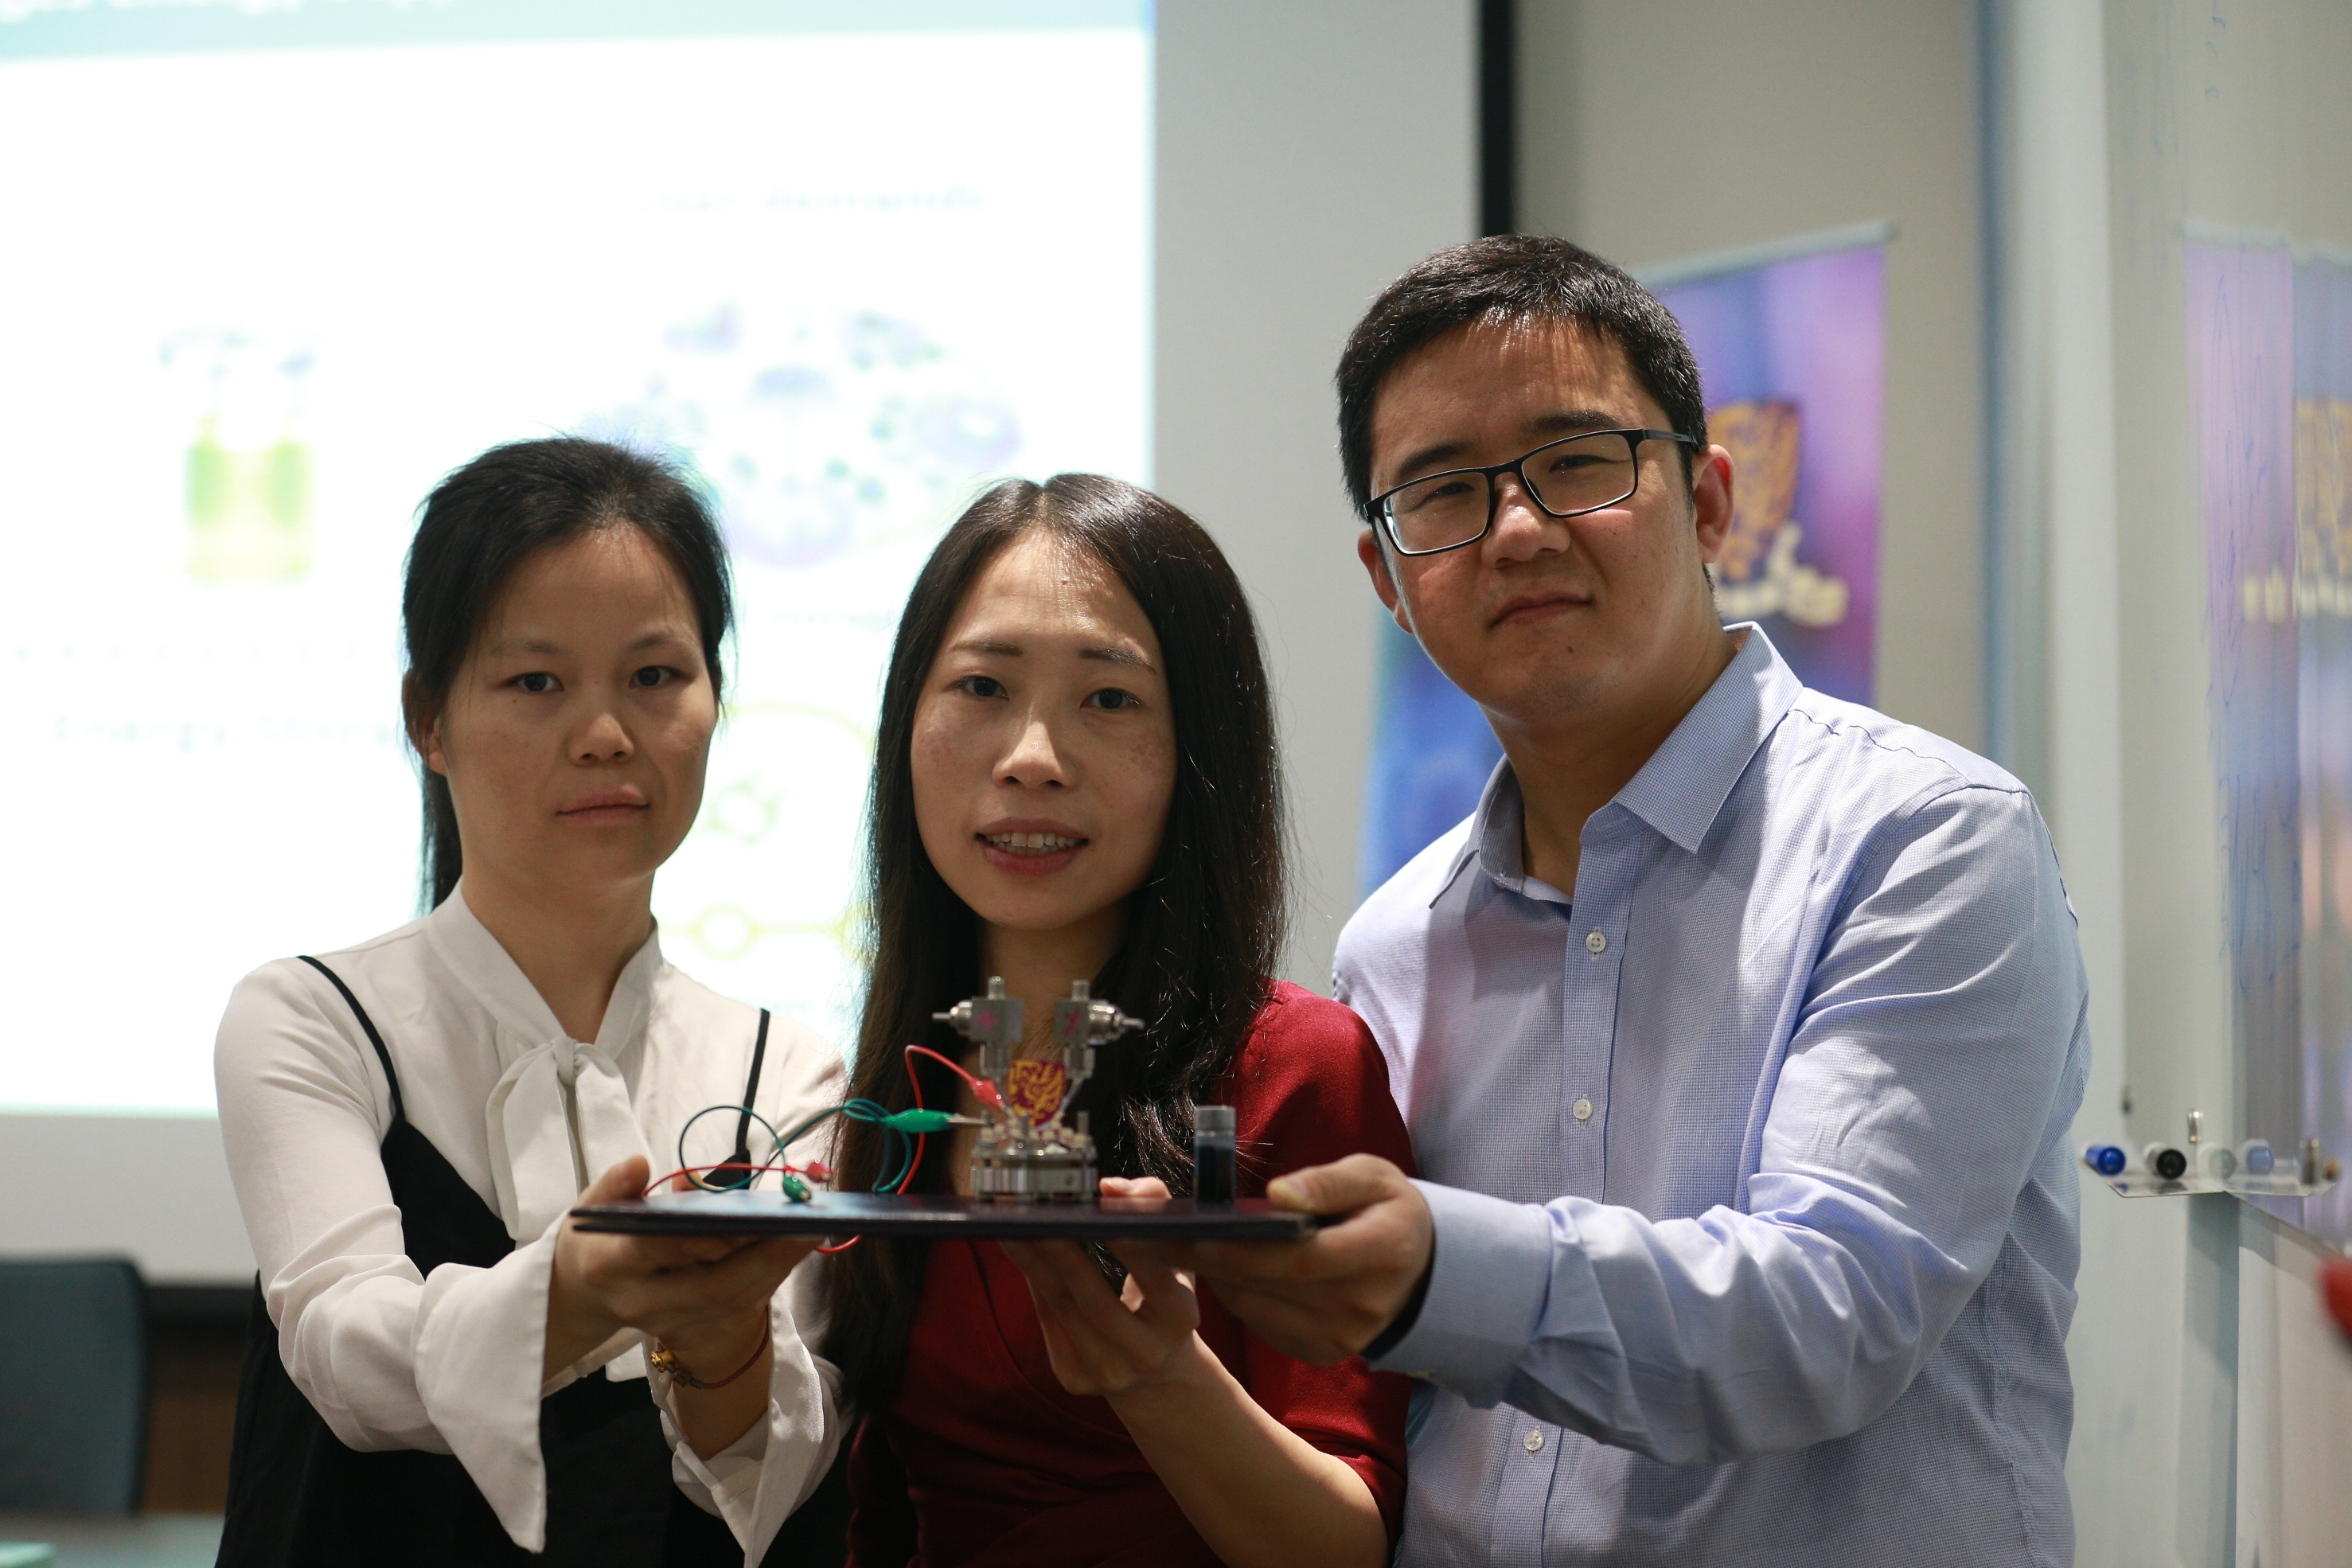 Prof. Yi-Chun Lu, Department of Mechanical and Automation Engineering, CUHK (centre) and her research team